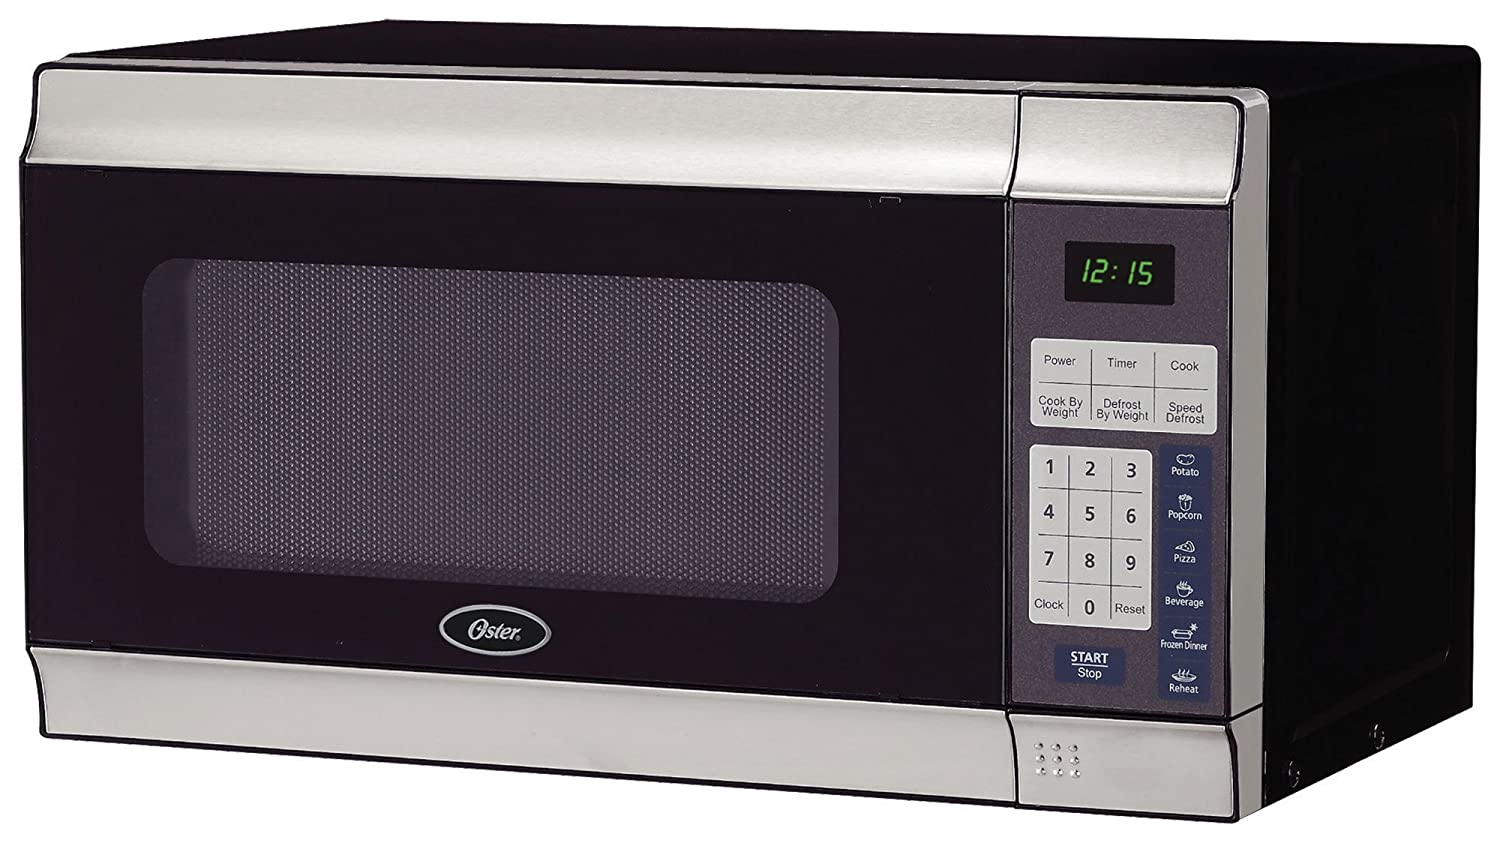 Amazon.com: Oster 0.7-Cubic Foot, 700-Watt Countertop Microwave ...